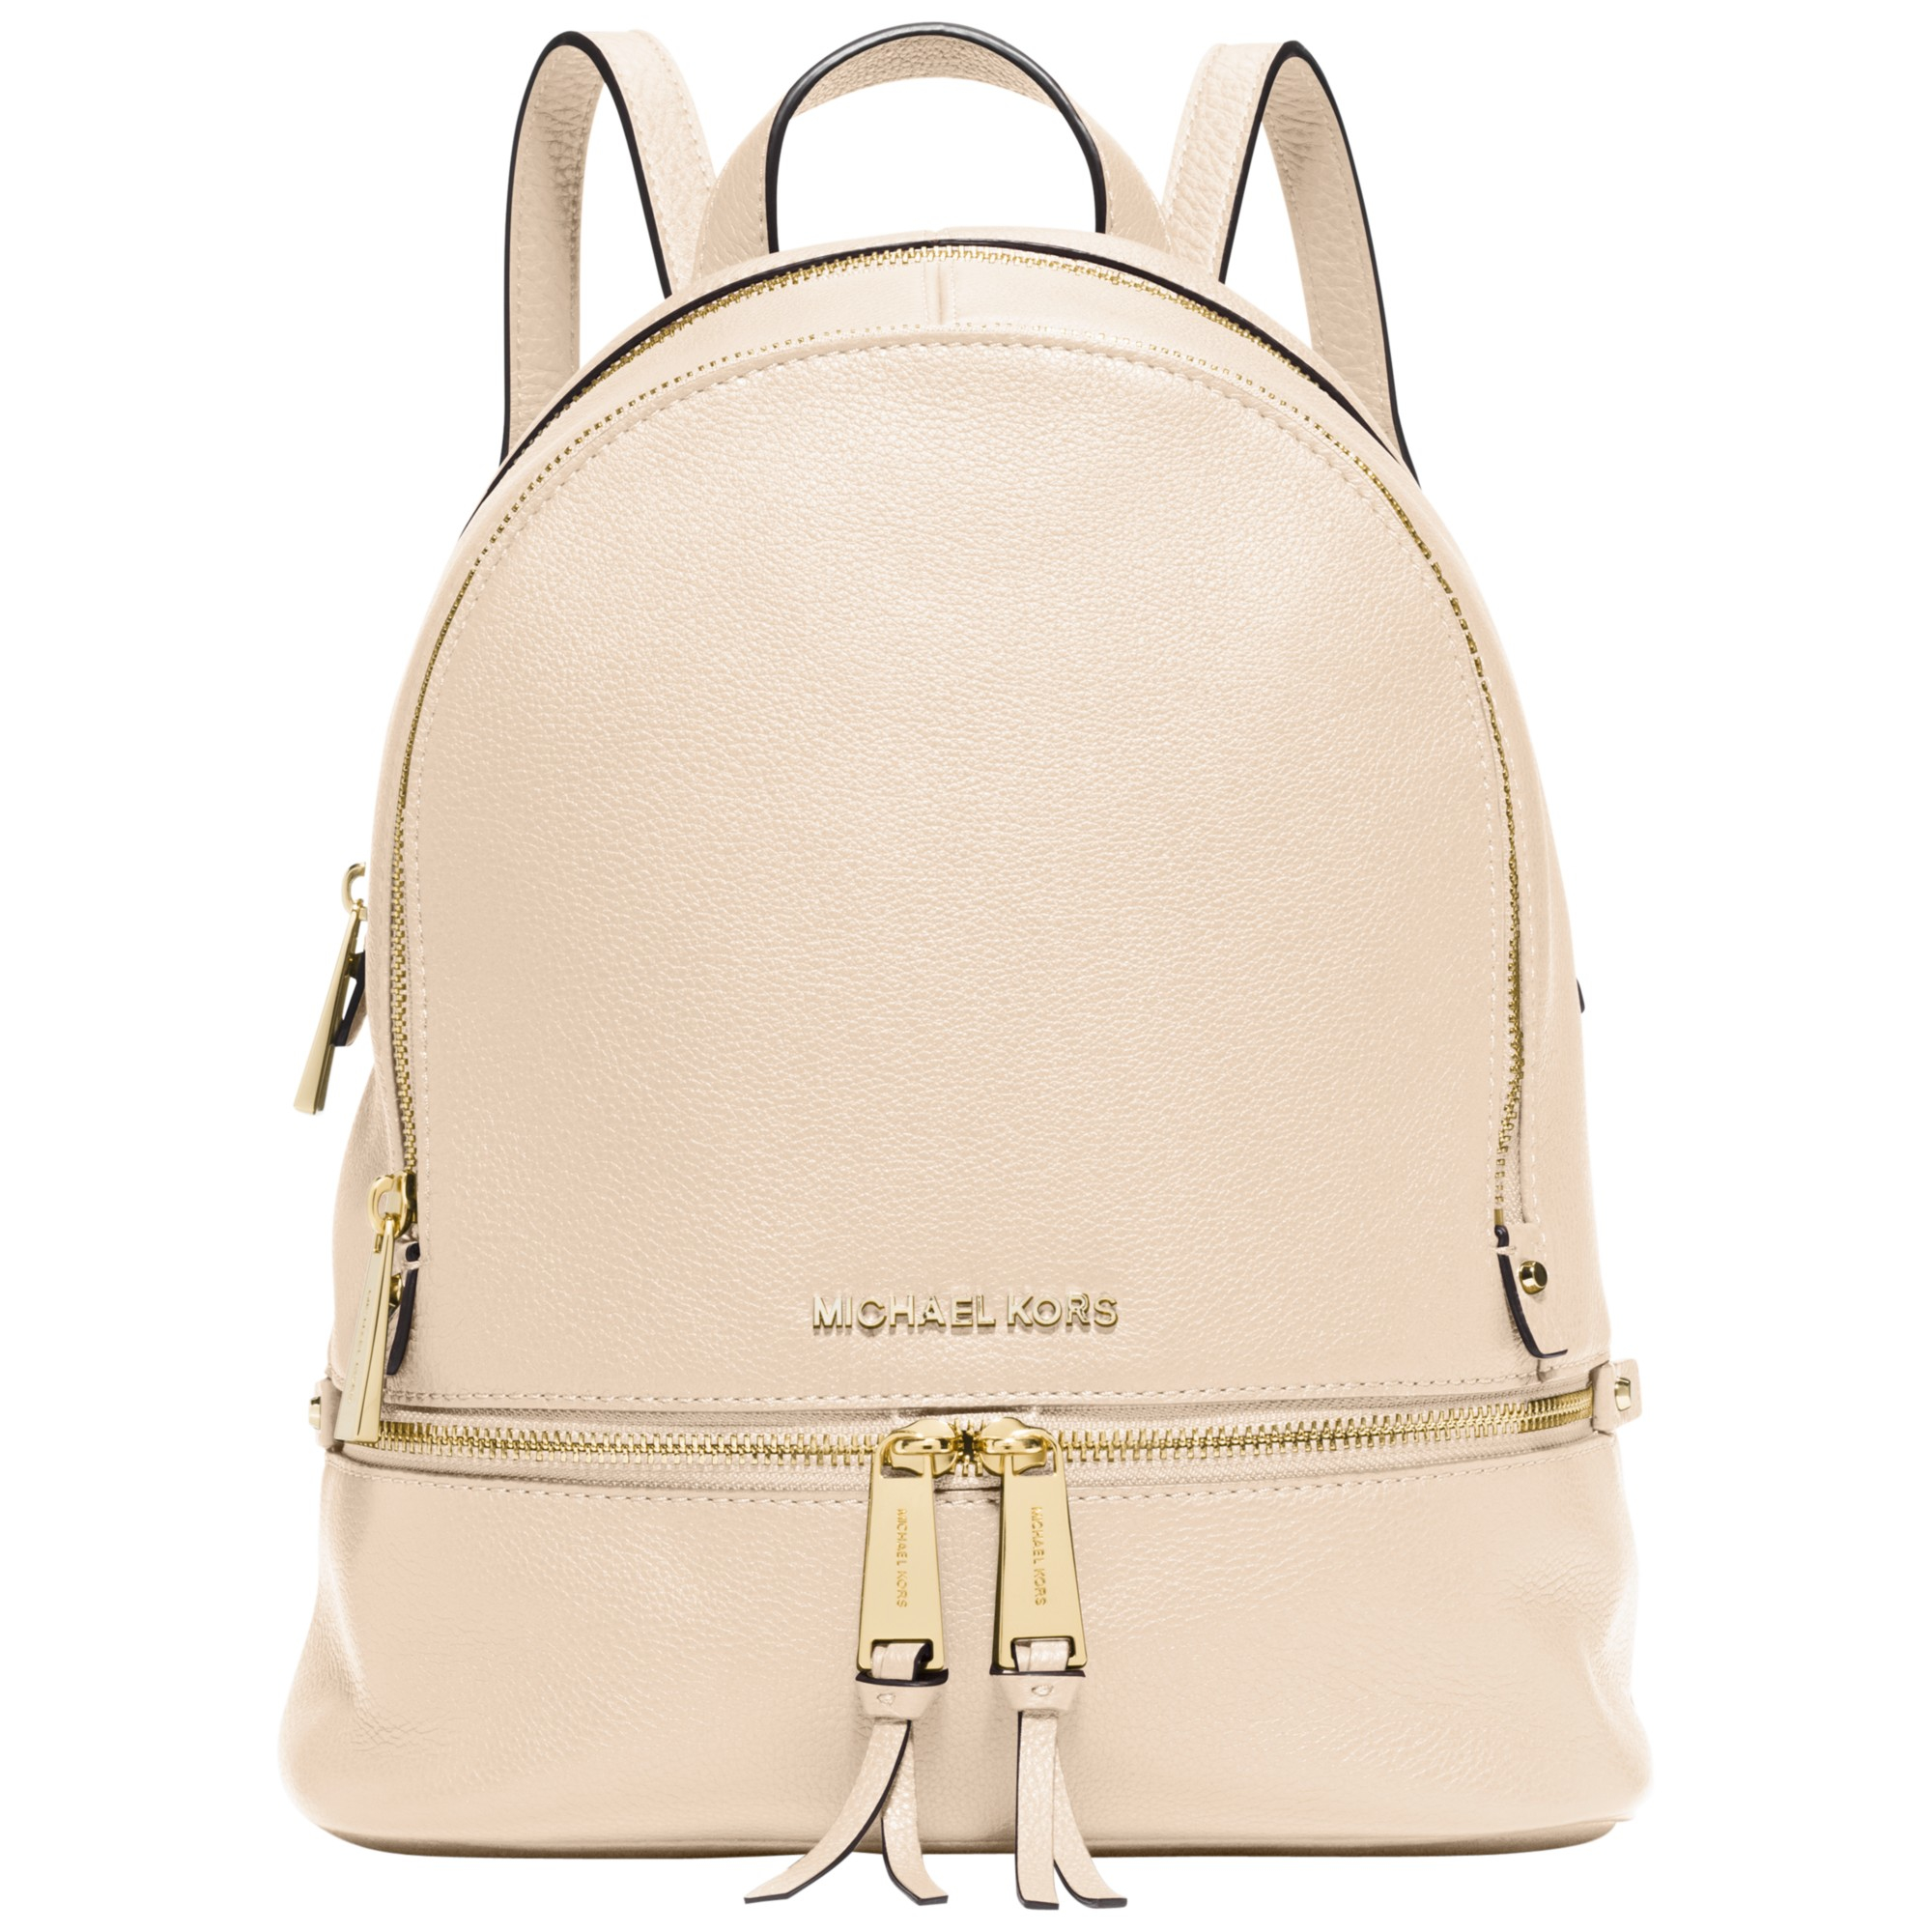 36934c8471bc ... bag 84232 7a377 sweden michael michael kors rea zip small leather  backpack in natural lyst ffae7 75a63 ...